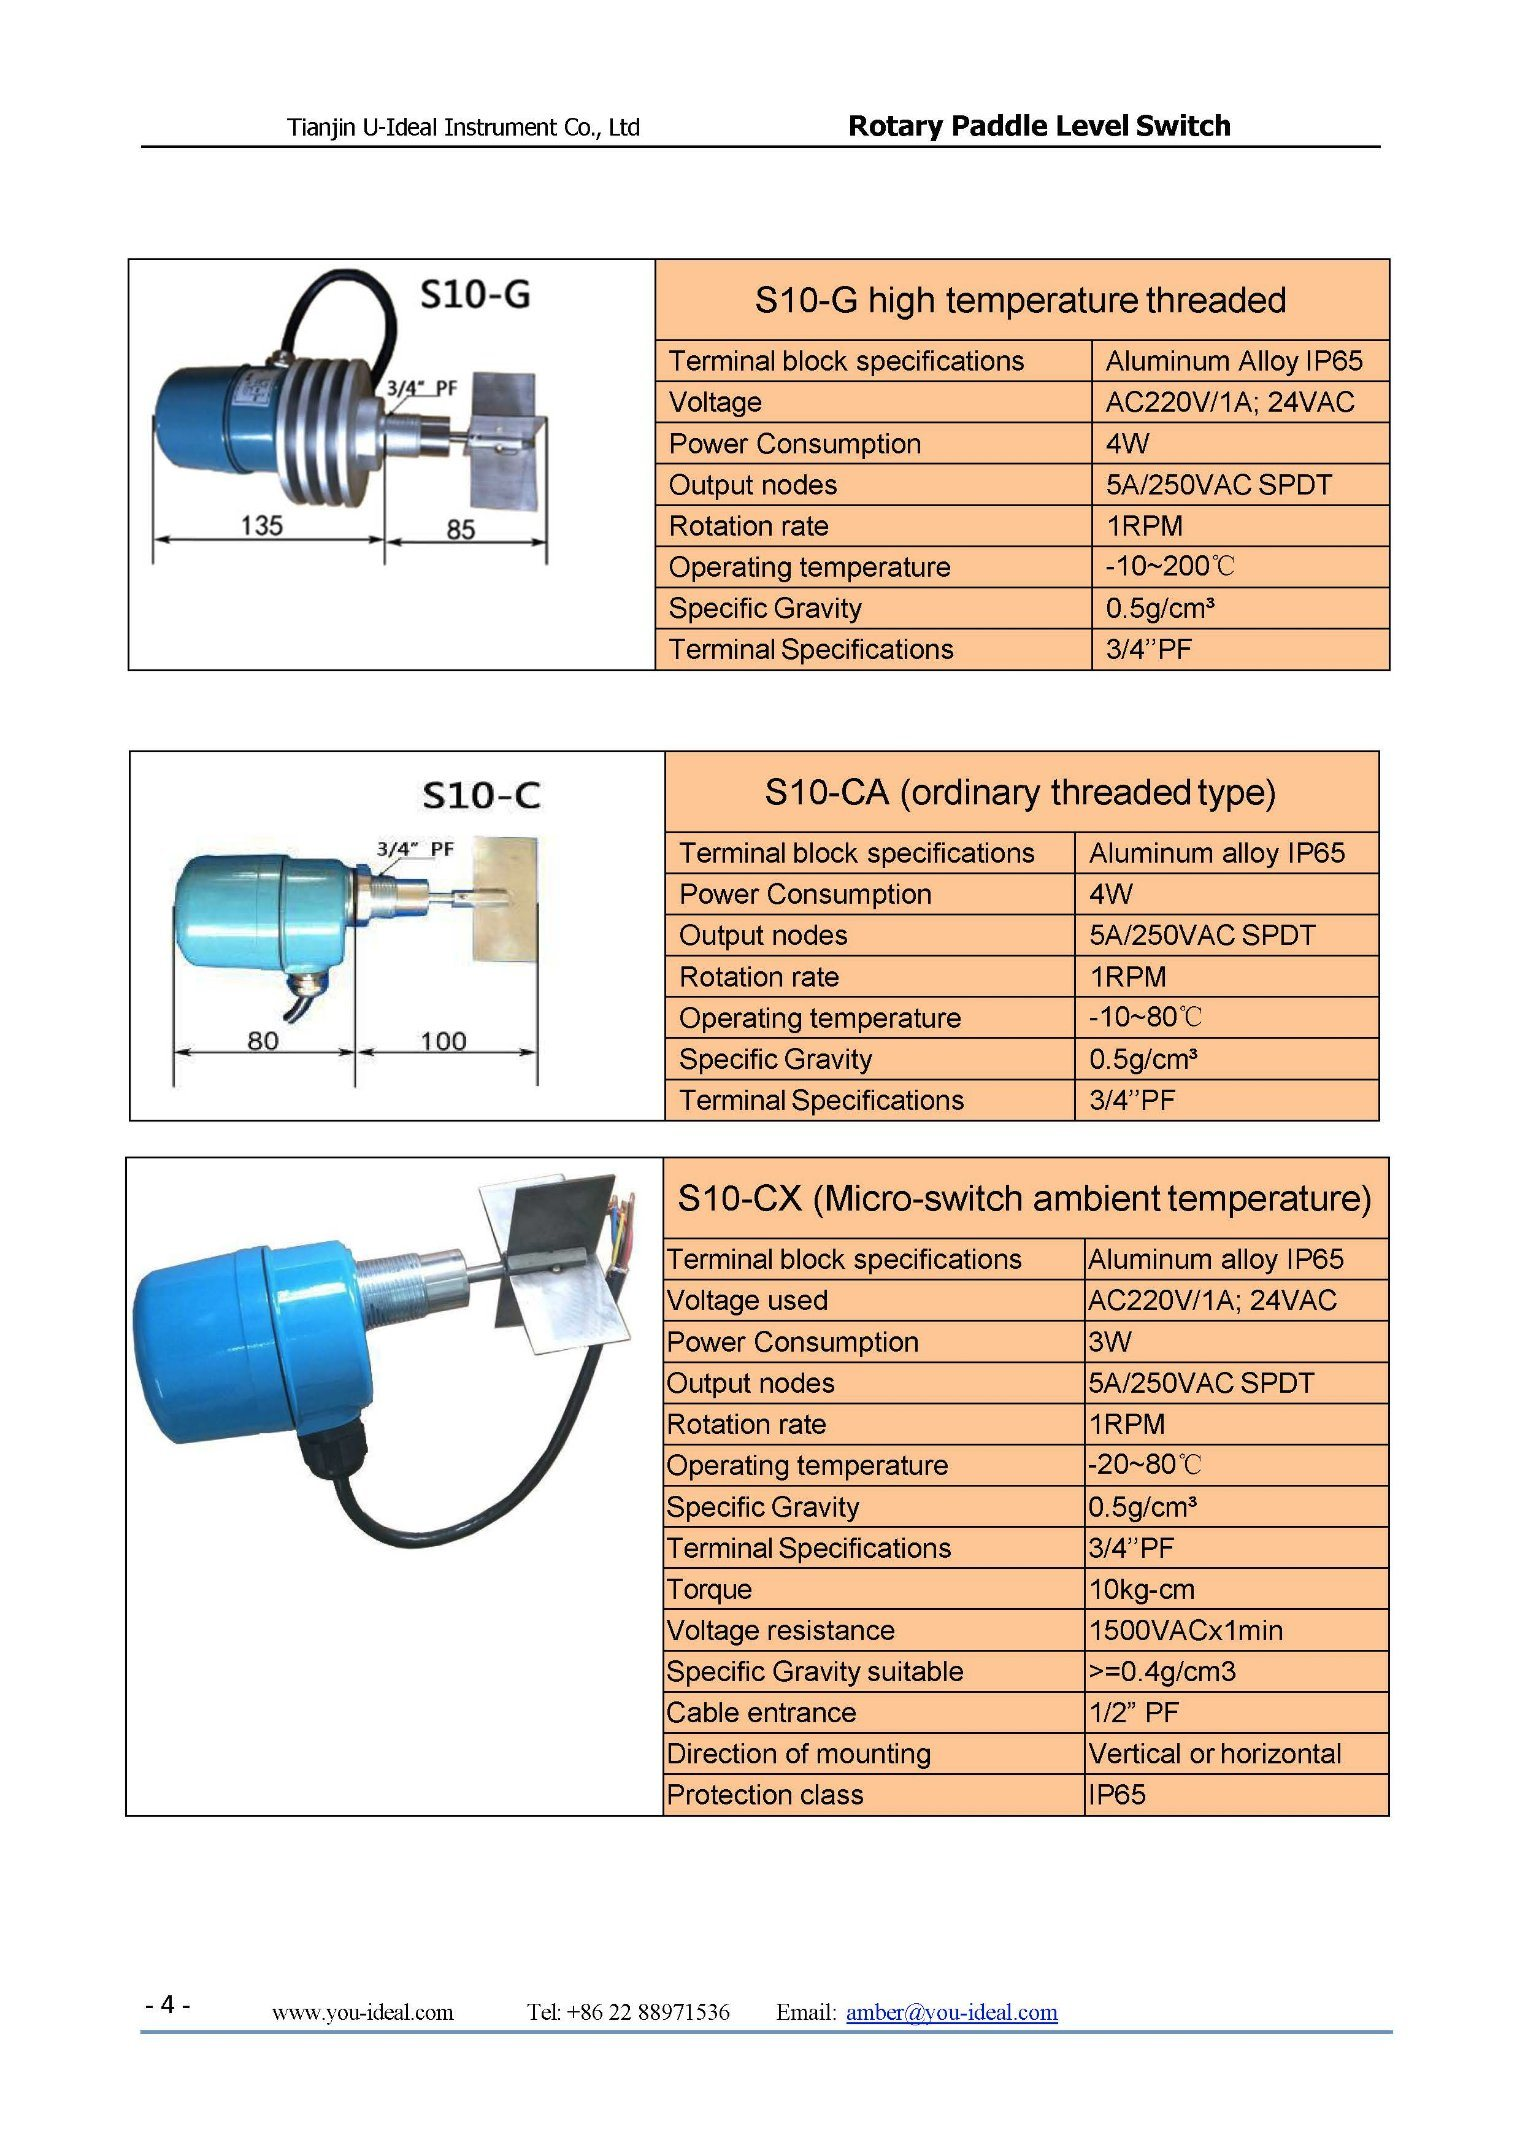 Rotary Paddle Level Sensor Switch For Silos China Spdt Float Wiring Diagram Pictures And Description Of Different Models